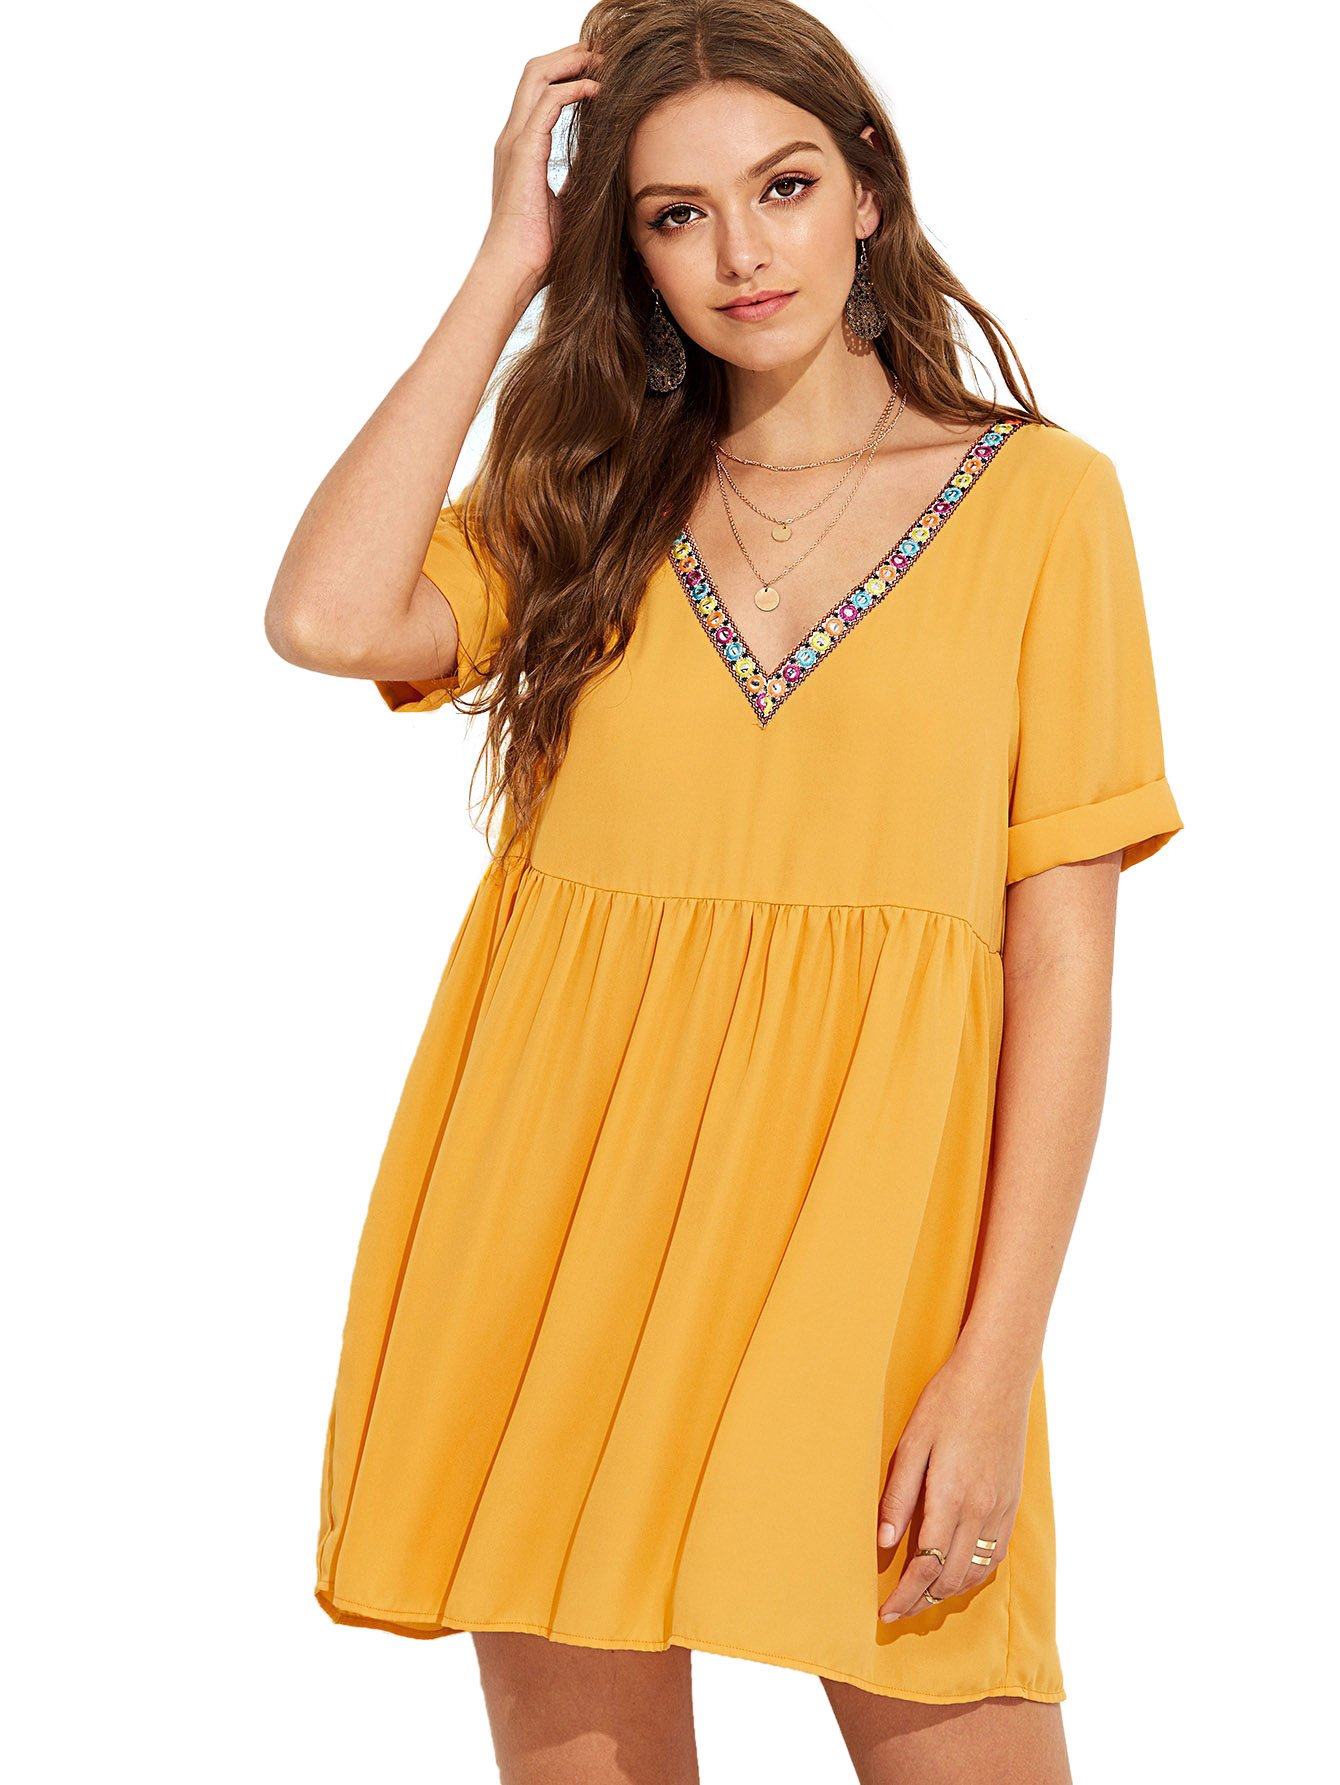 Available at Amazon: Floerns Women's Summer Tunic Dress V Neck Casual Loose Flowy Swing Shift Dress